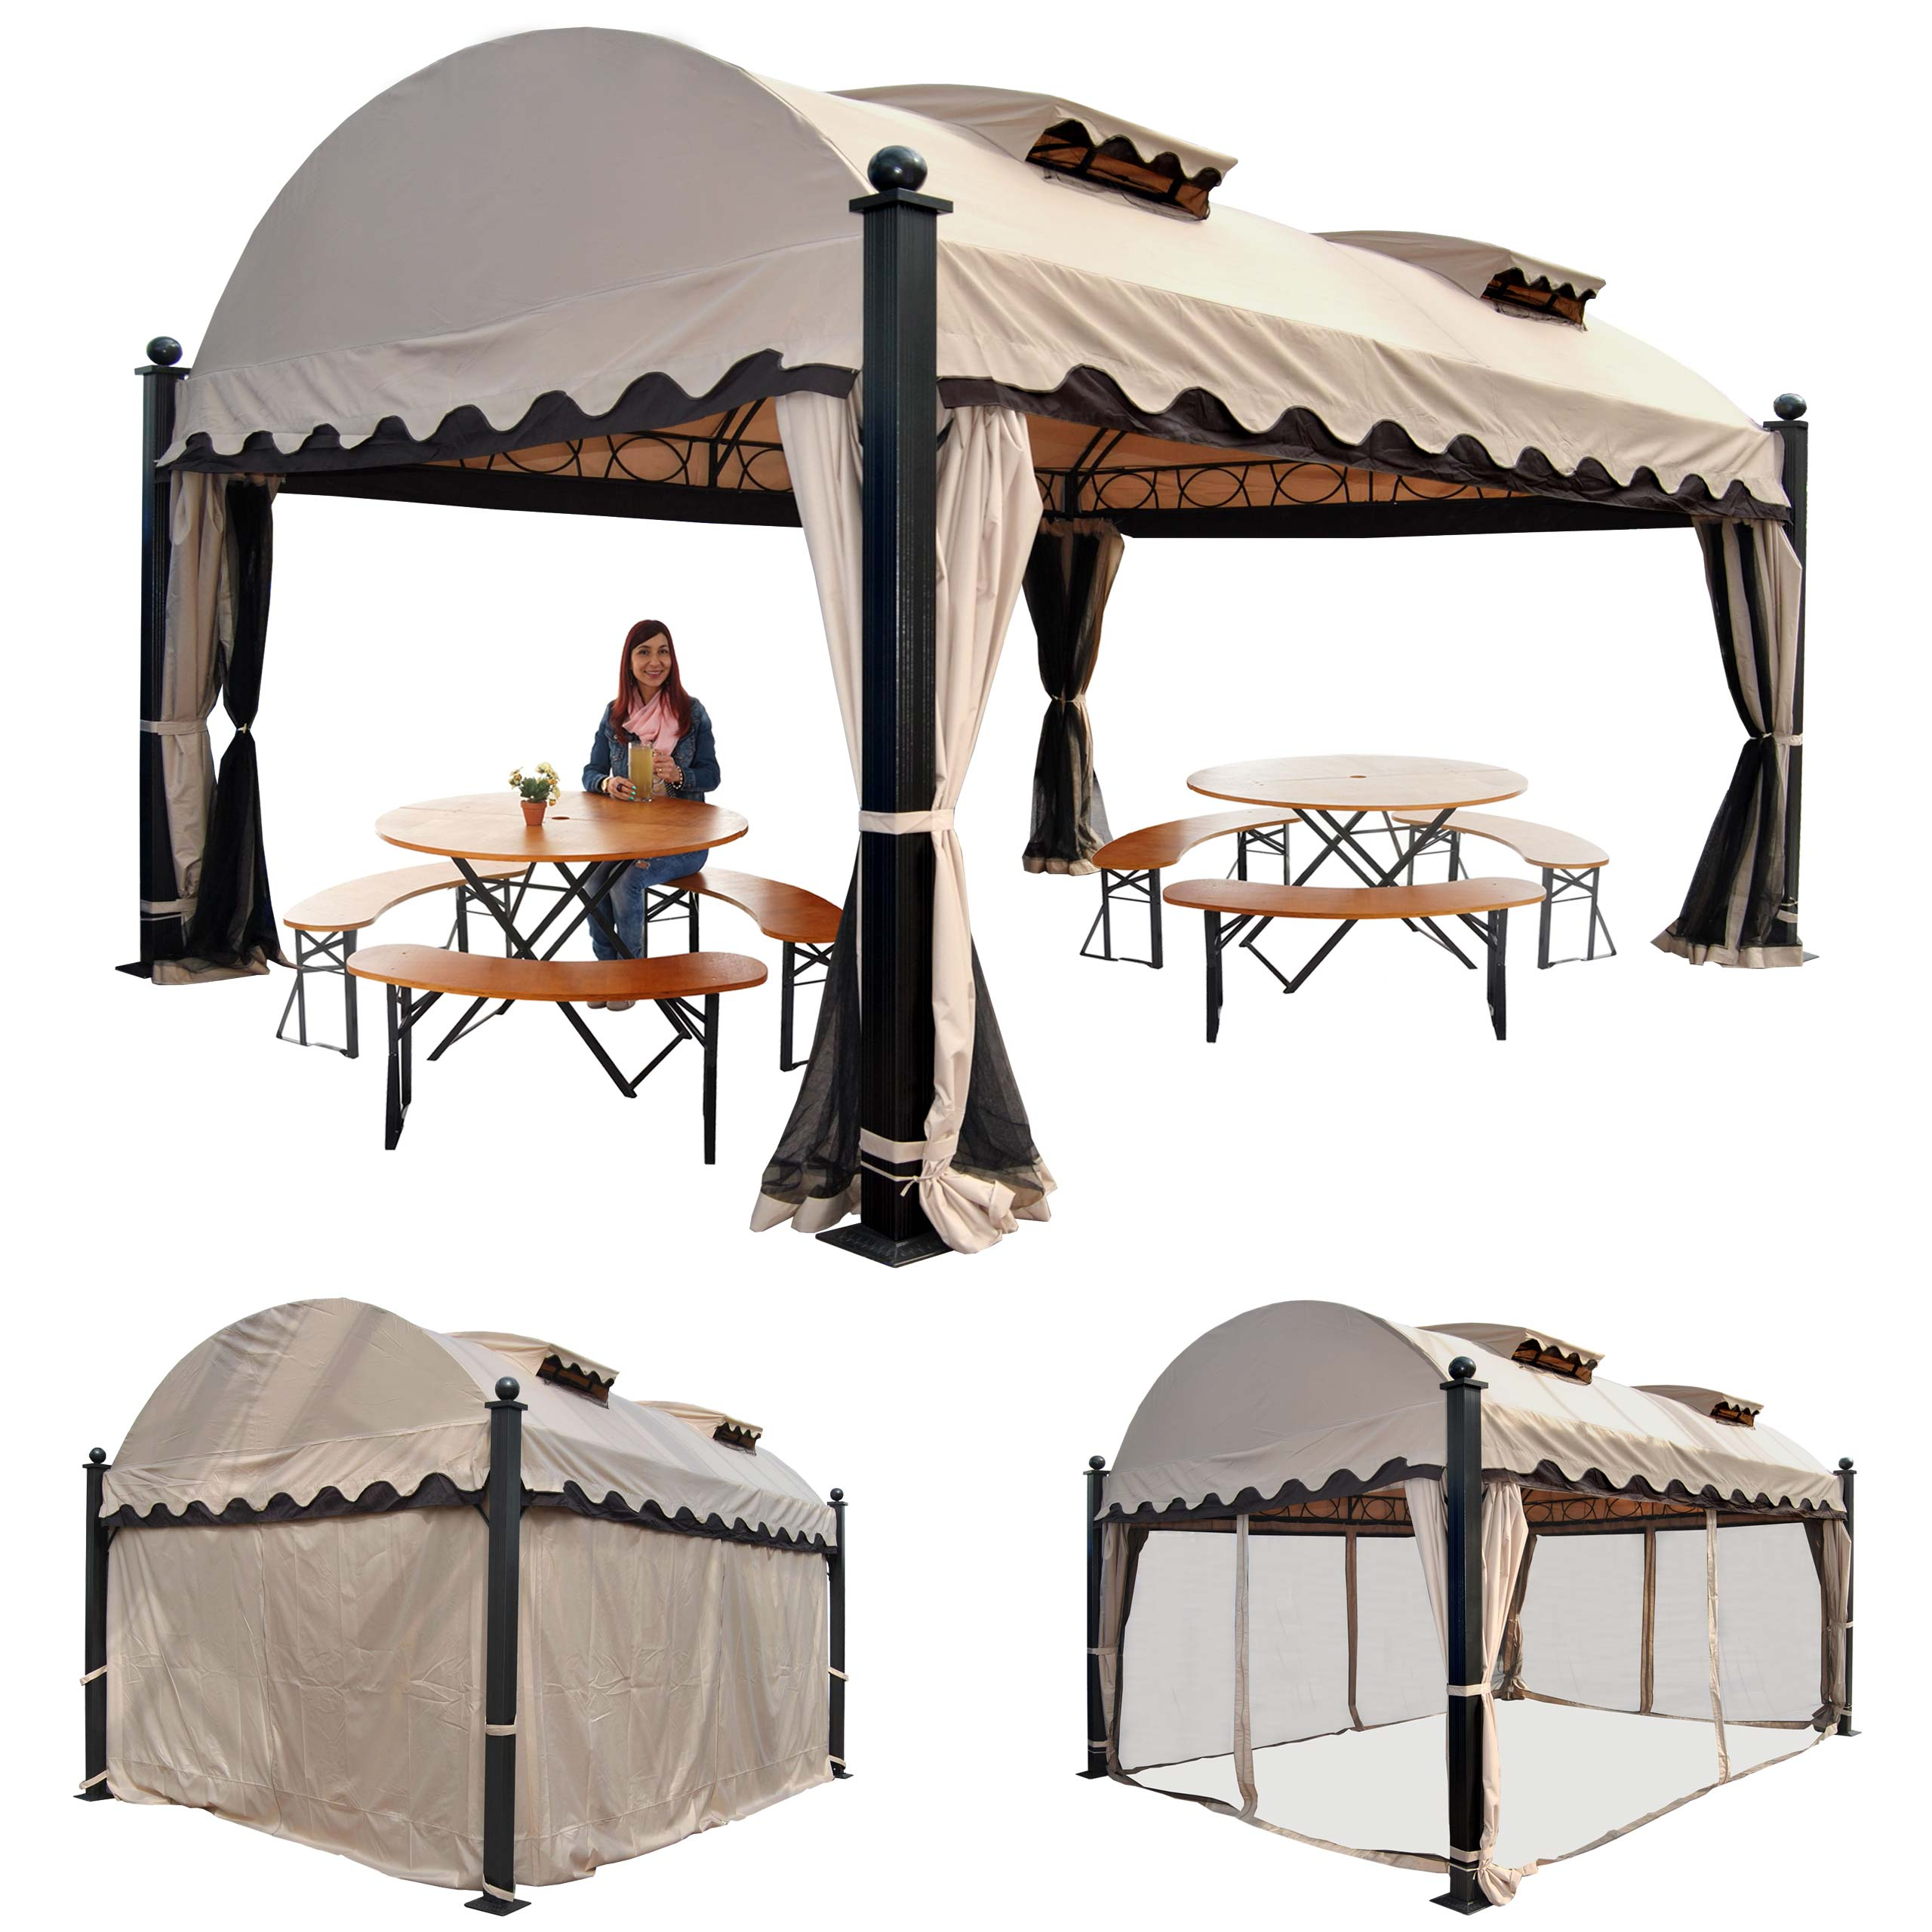 pergola daroca garten pavillon 10cm luxus alu gestell. Black Bedroom Furniture Sets. Home Design Ideas